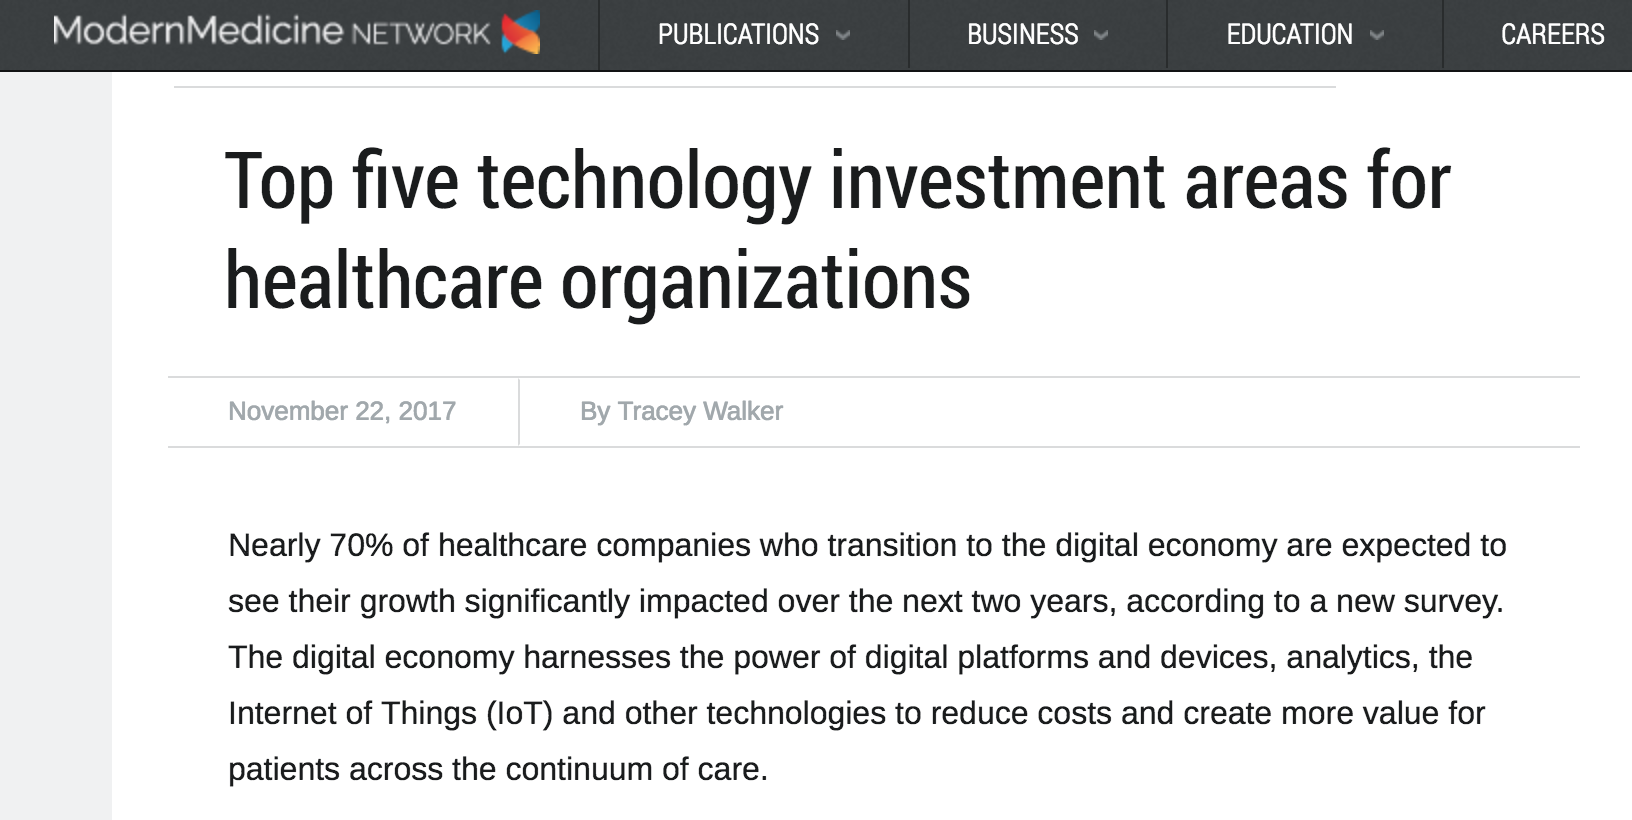 Top five technology investment areas for healthcare